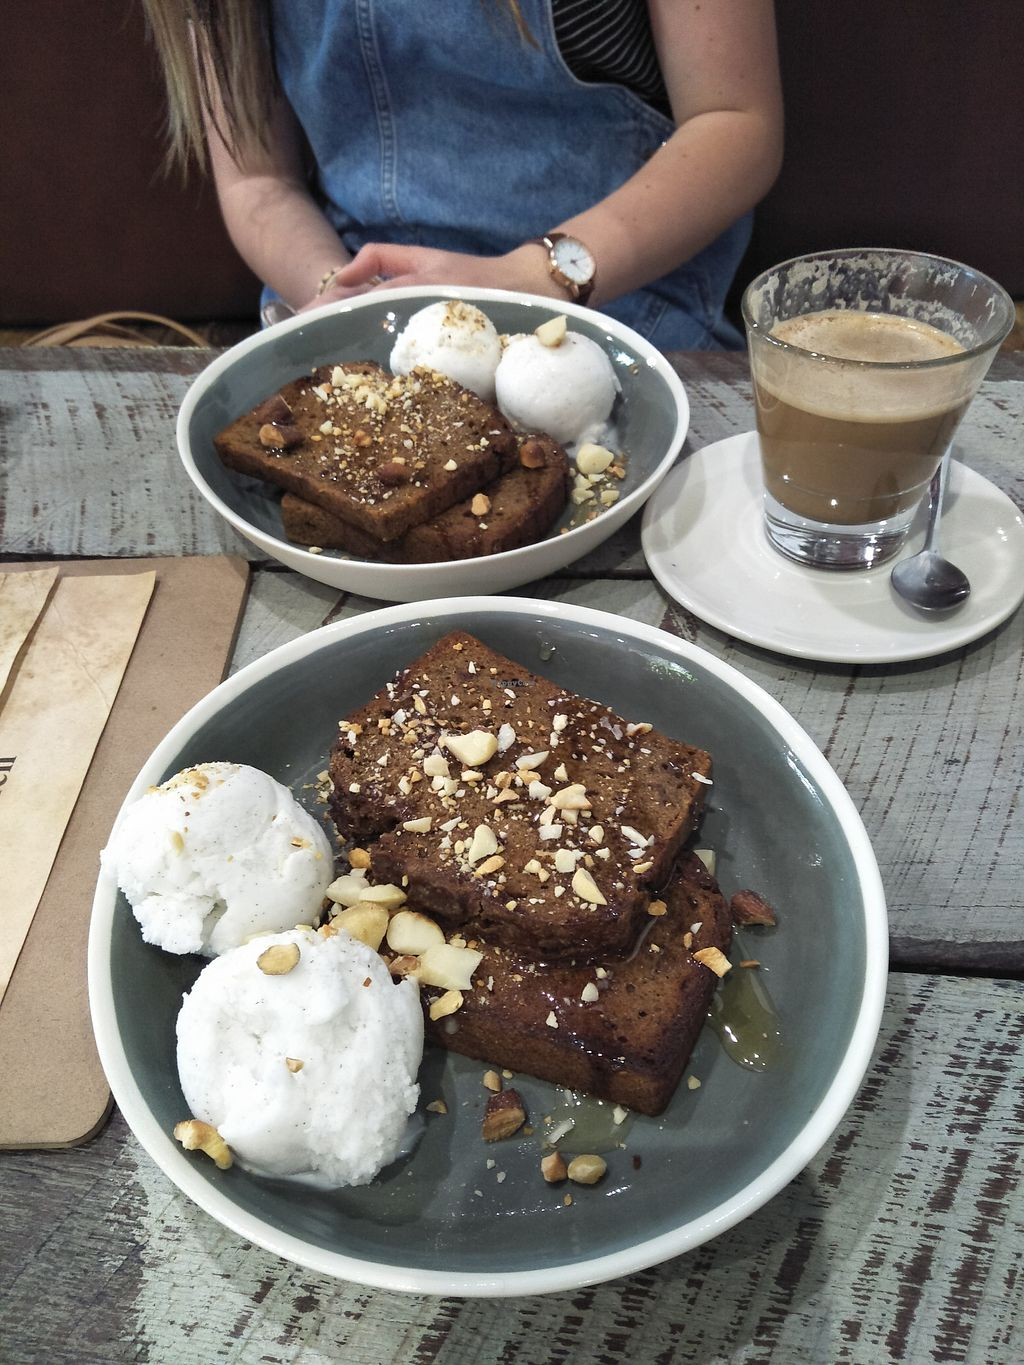 """Photo of Melo Velo  by <a href=""""/members/profile/Cynthia1998"""">Cynthia1998</a> <br/>Vegan banana bread with vegan Over the Moon coconut ice cream <br/> December 29, 2017  - <a href='/contact/abuse/image/105236/340403'>Report</a>"""